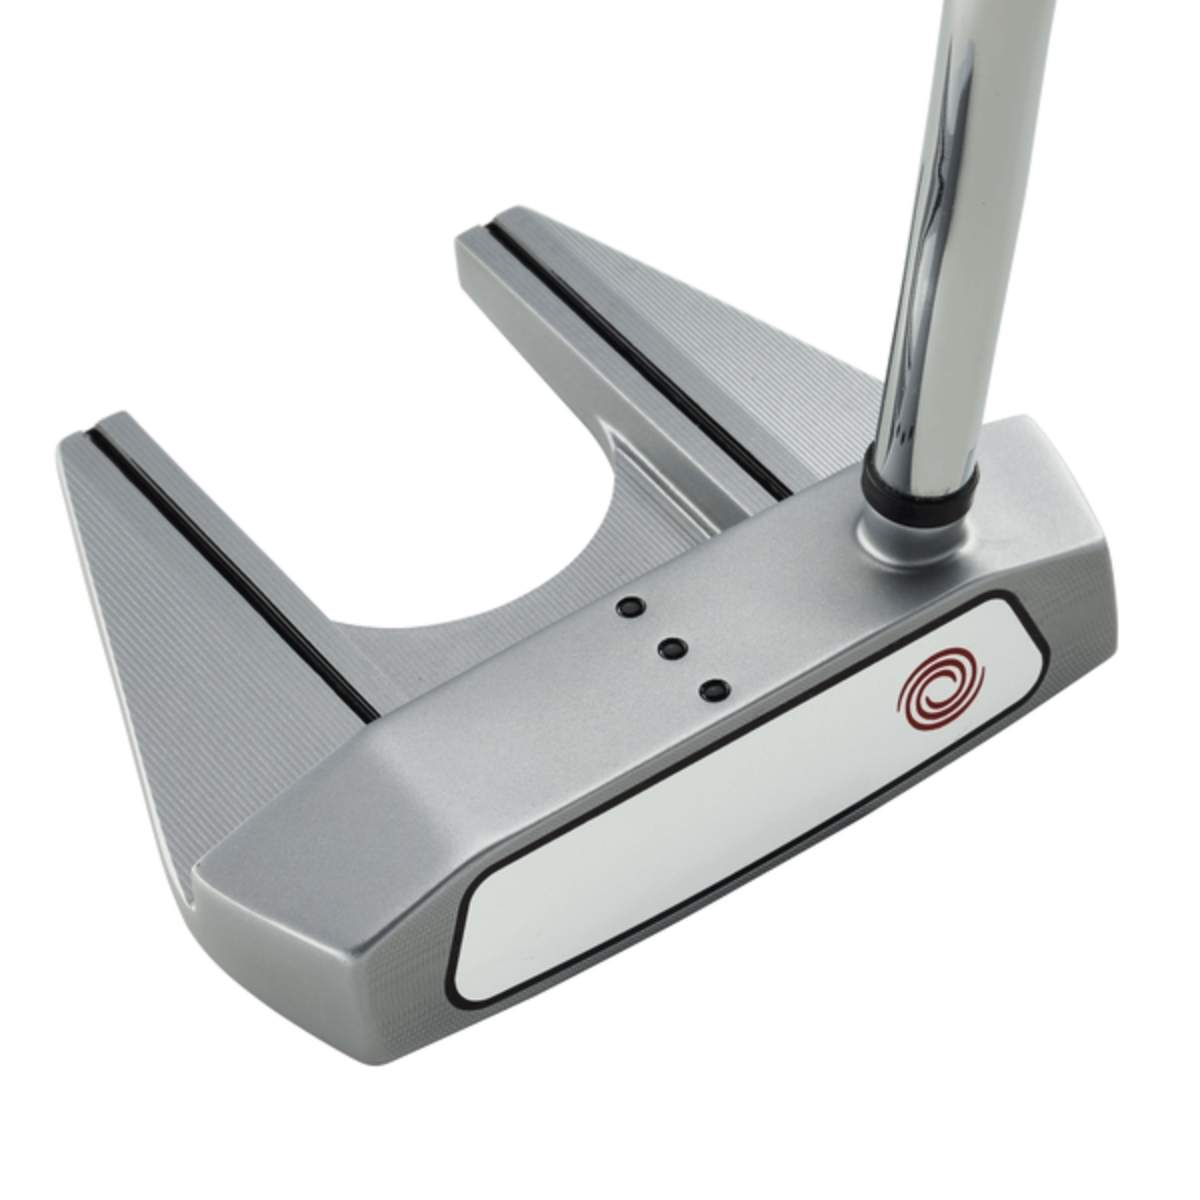 Odyssey White Hot OG #7 Putter